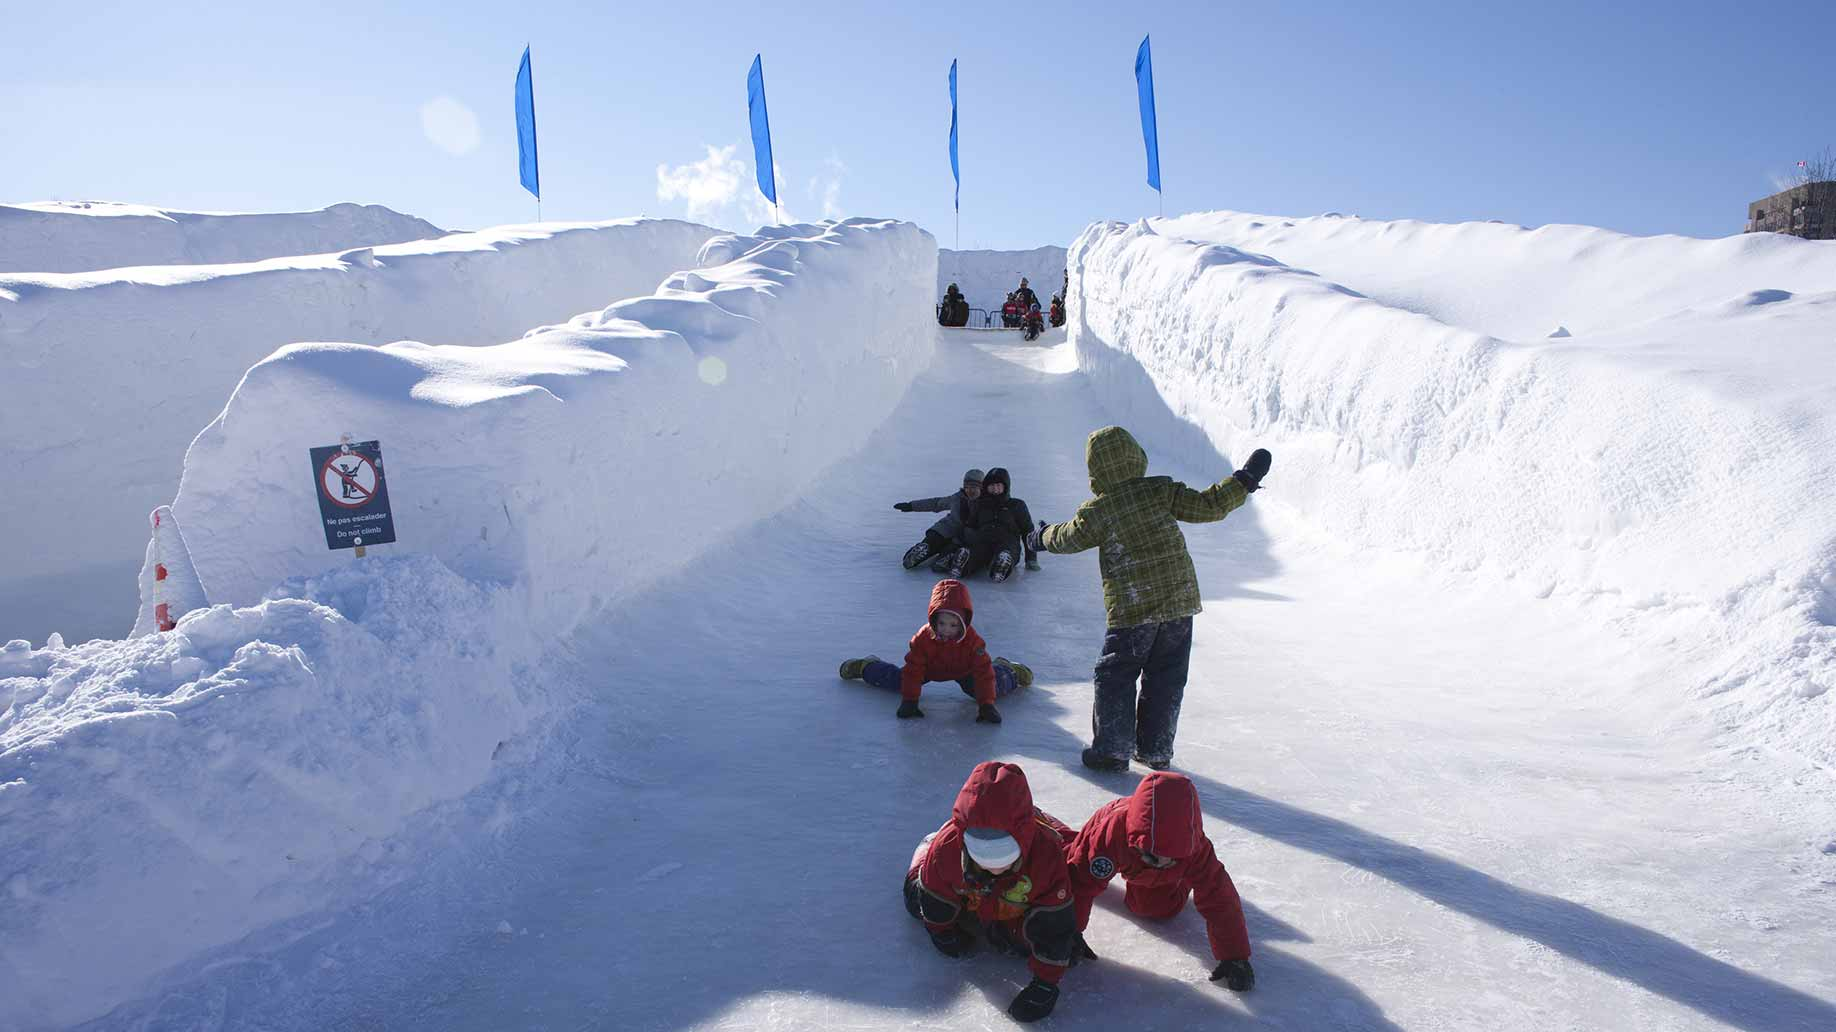 Quebec winter carnival where to stay what to do kids sliding down an ice slide at a winter festival in canada solutioingenieria Gallery